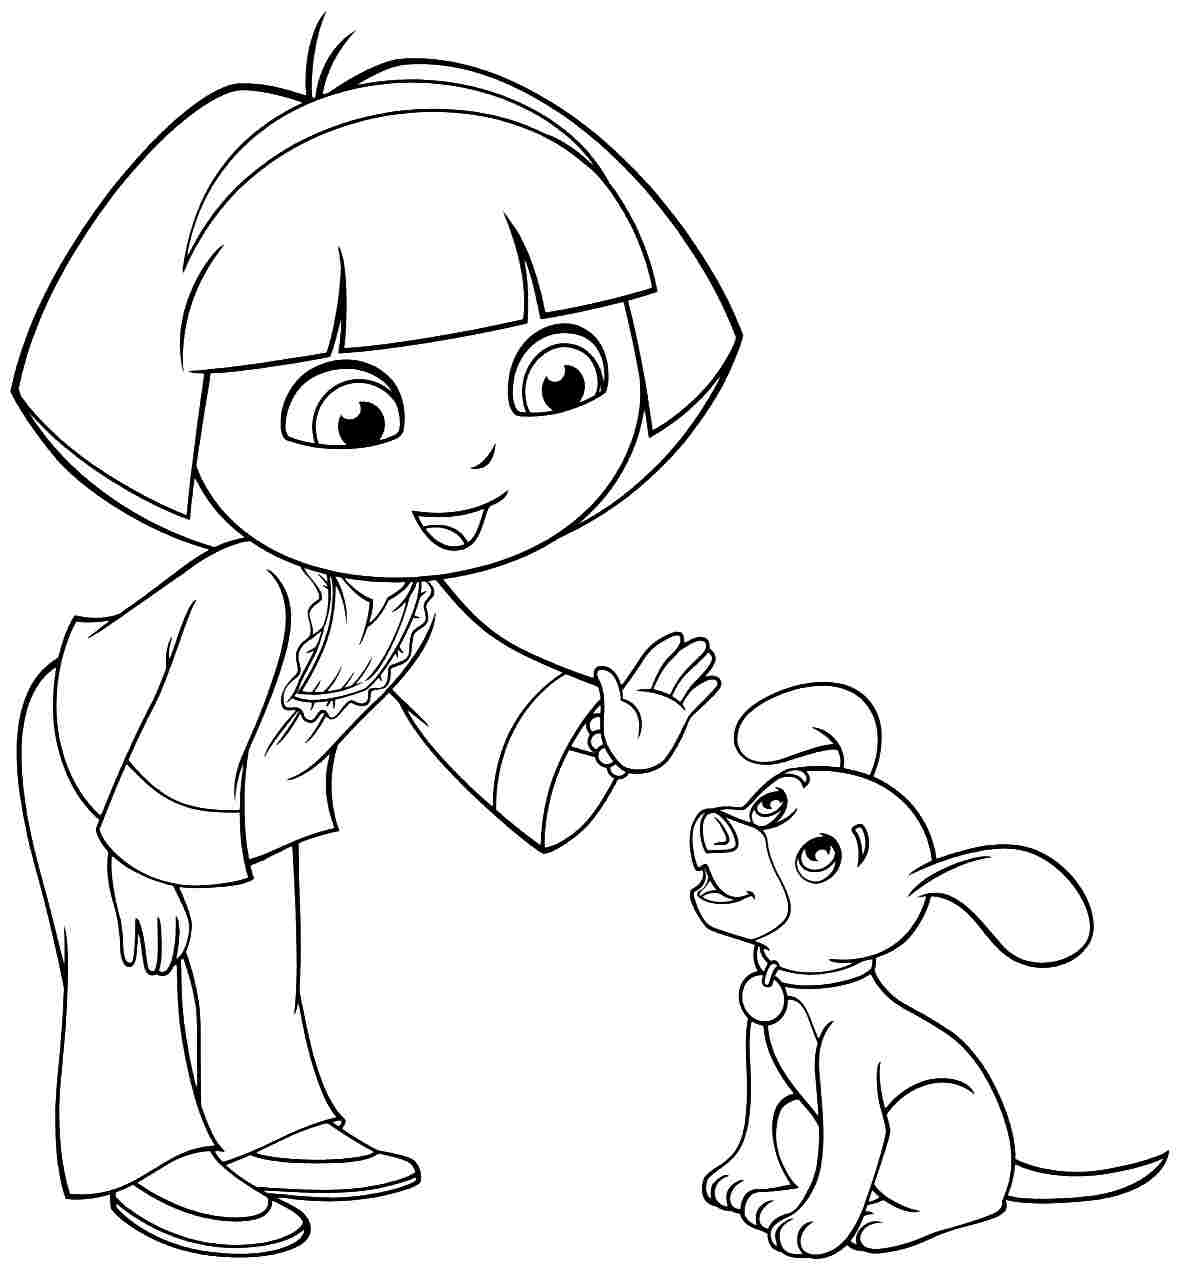 1181x1272 Image Cartoon Dora The Explorer And Friends Coloring Pages